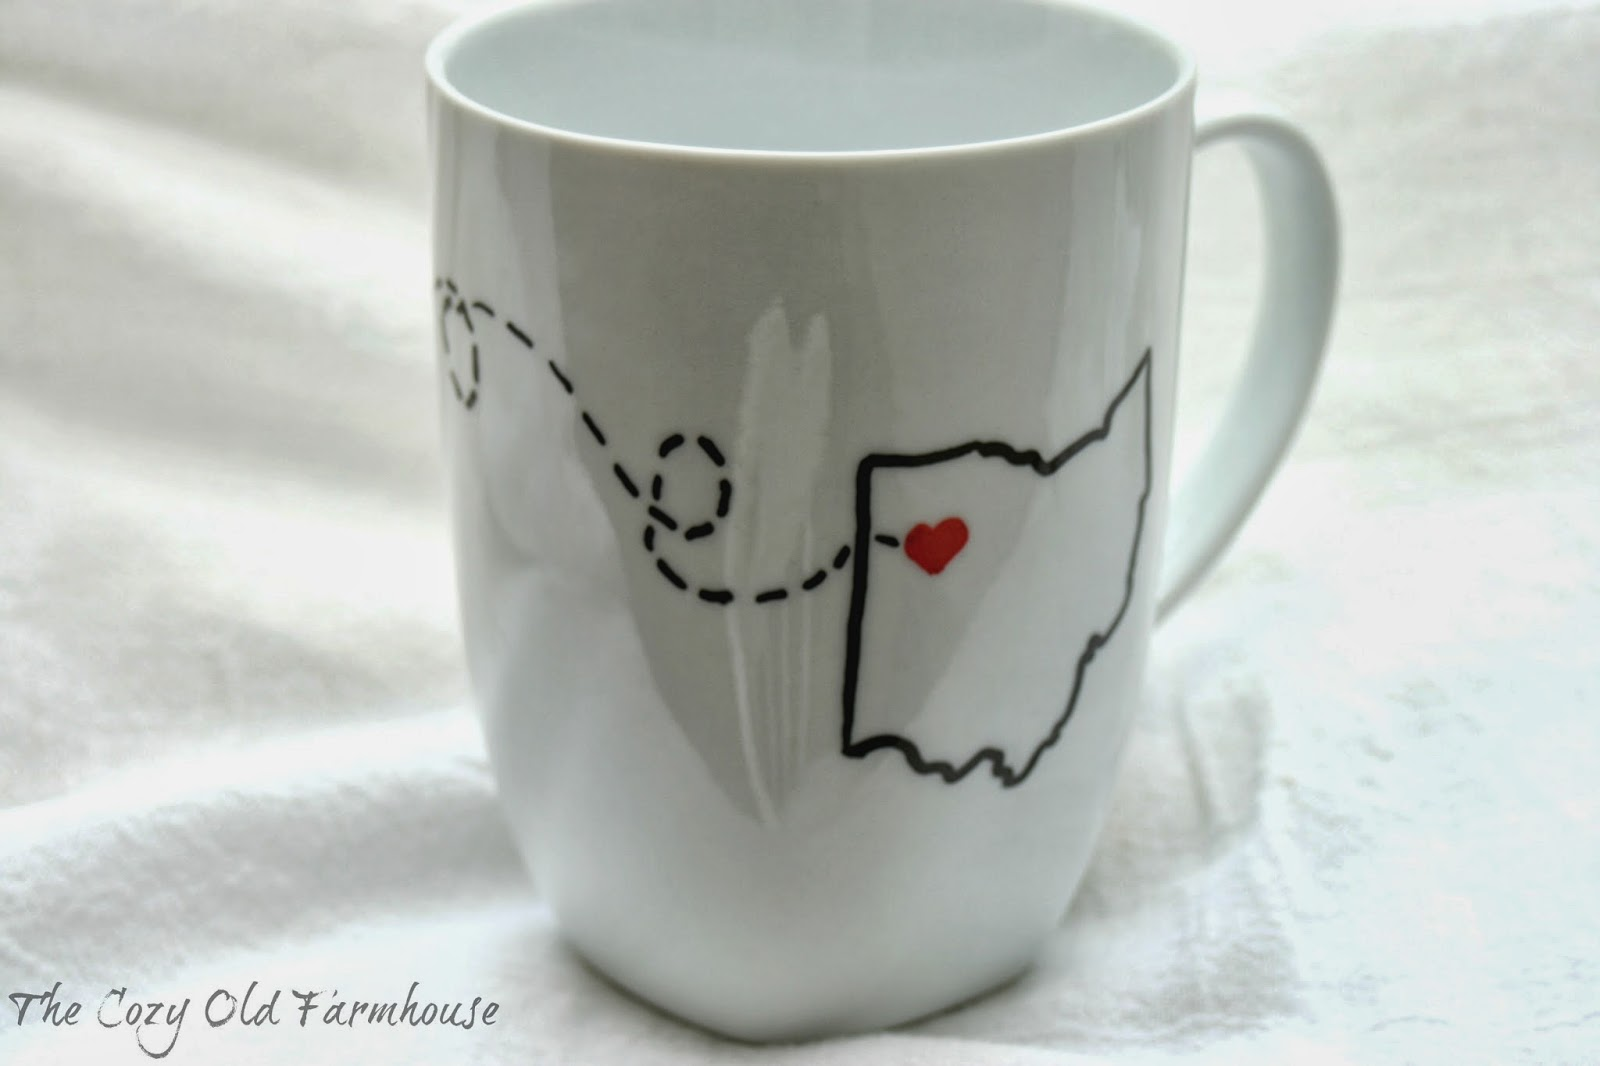 For Coffee Mug Design Ideas Displaying 20 Images For Coffee Mug Design